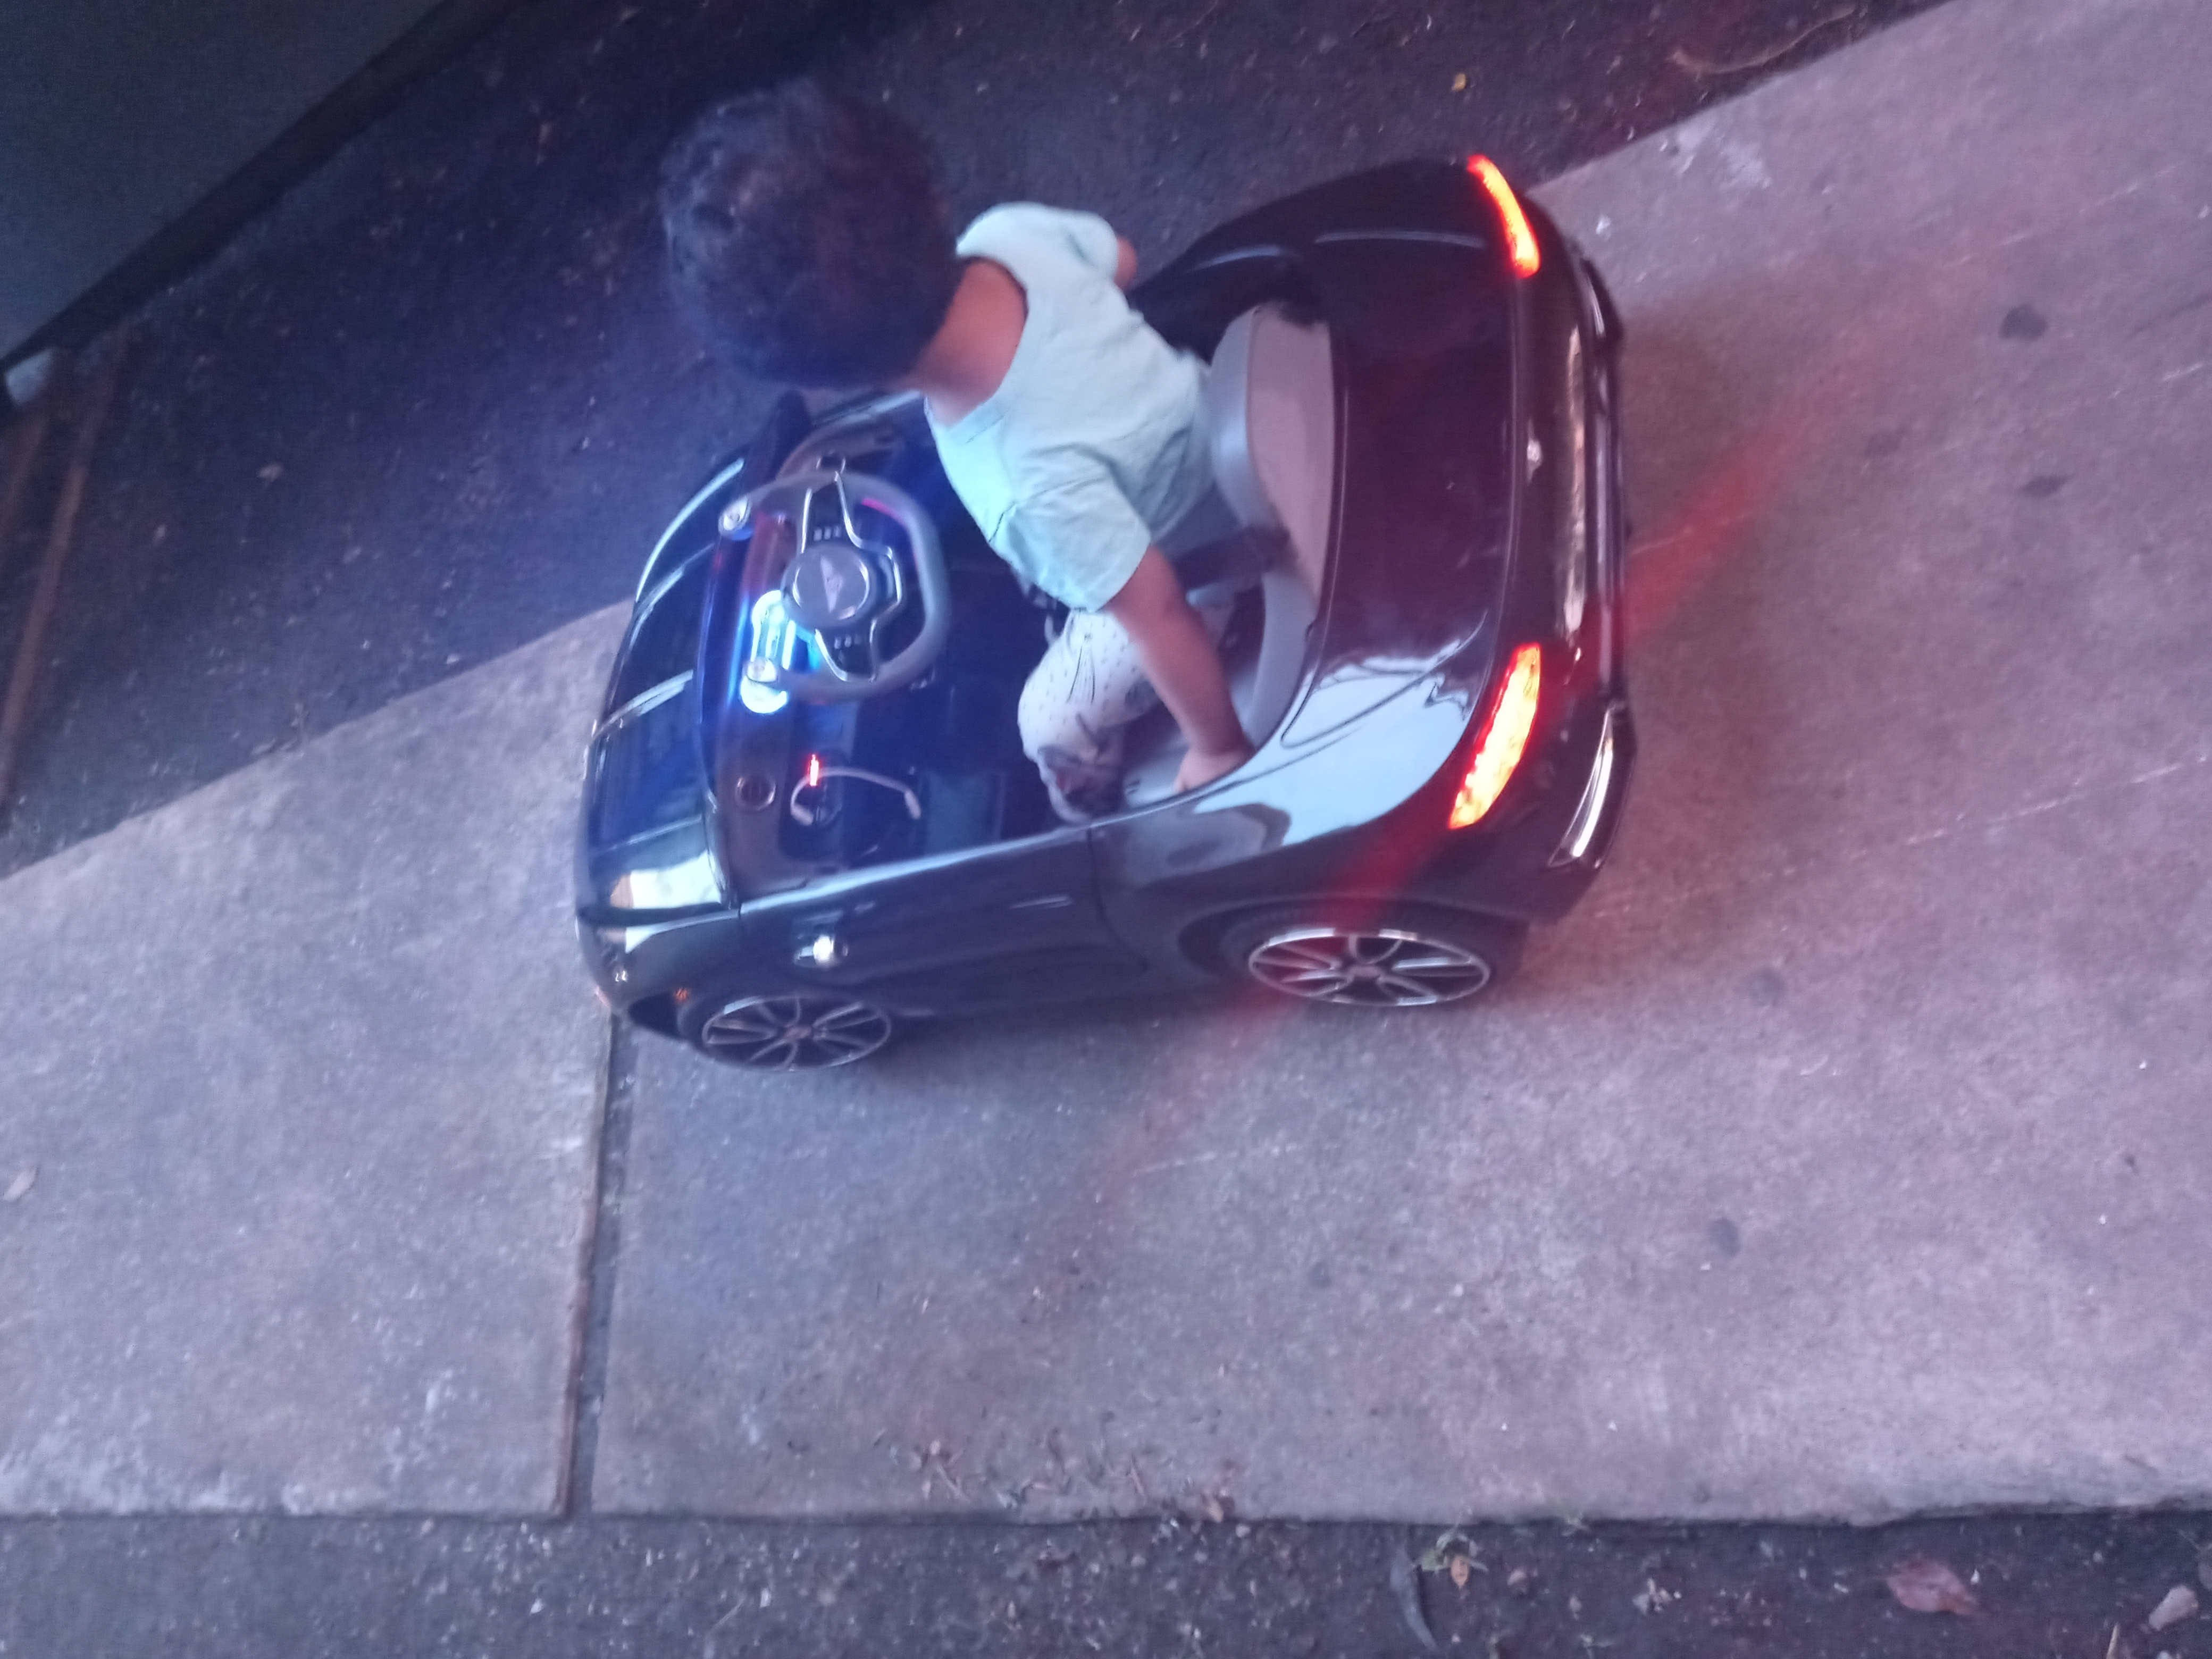 12V Bentley Licensed Electric Kids Ride On Car with Remote Control, Black photo review